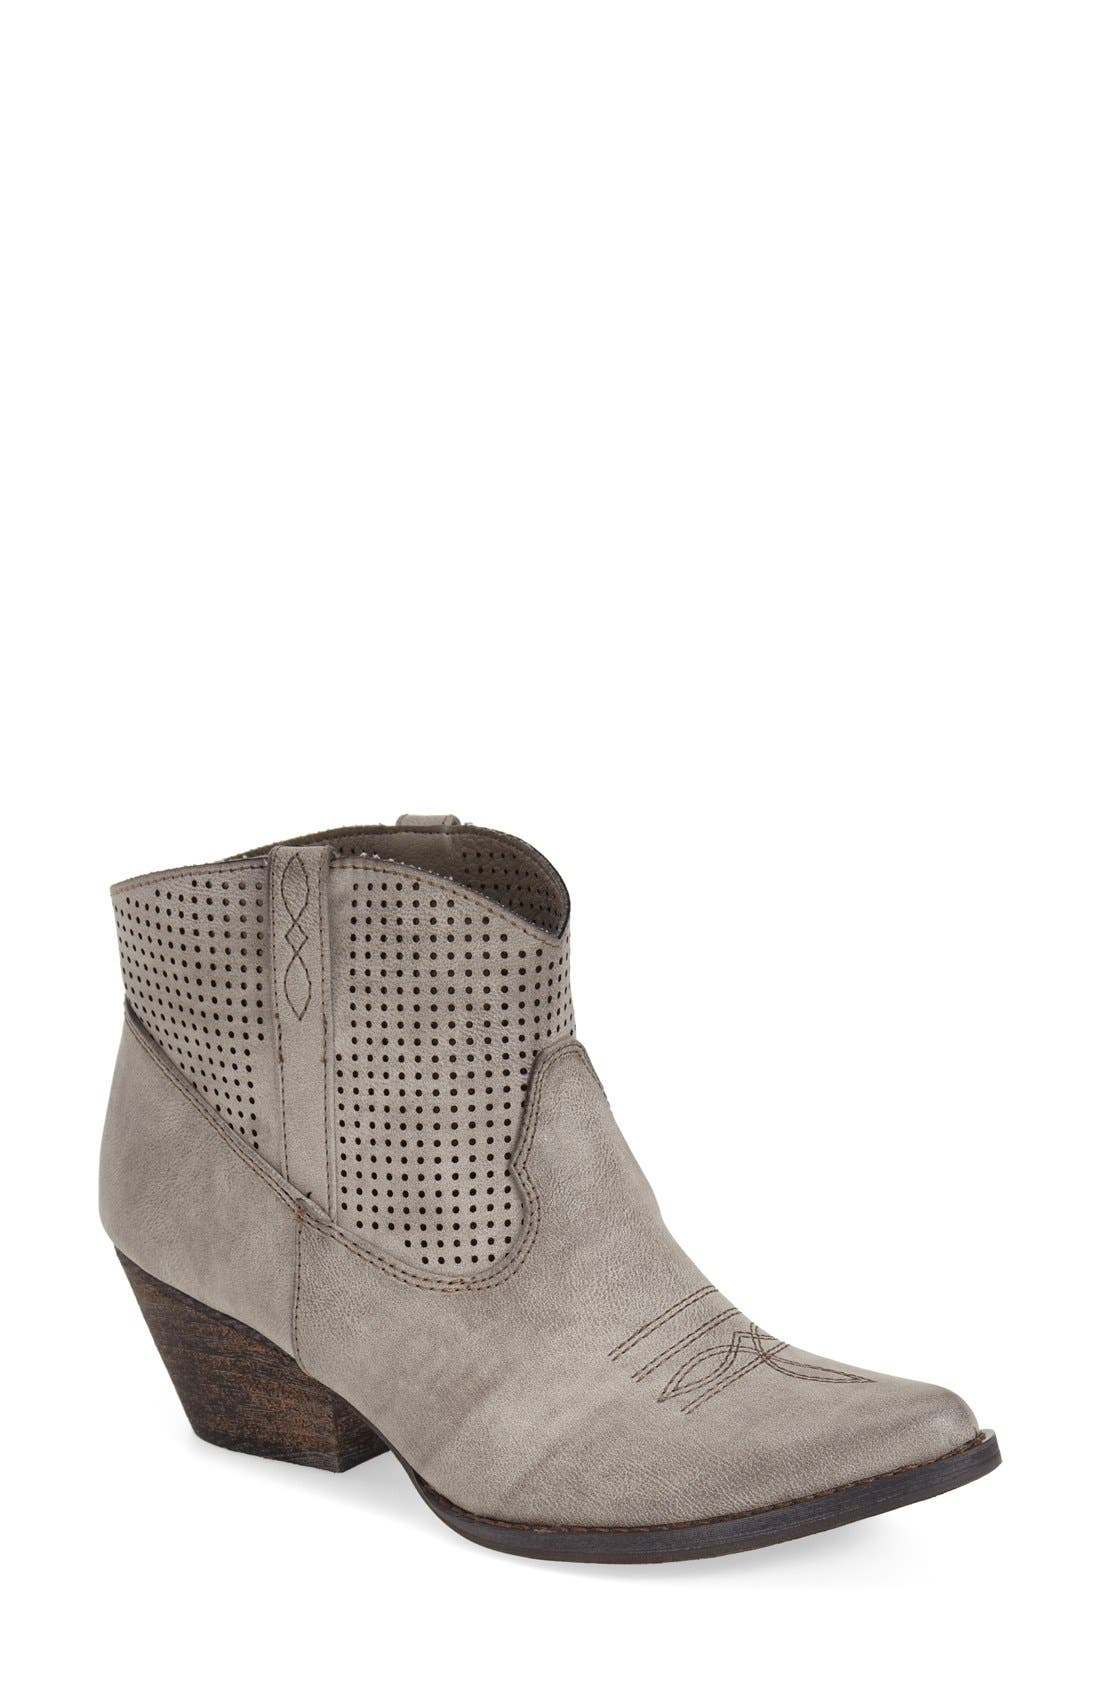 Main Image - Very Volatile 'Mishka' Perforated Western Bootie (Women)